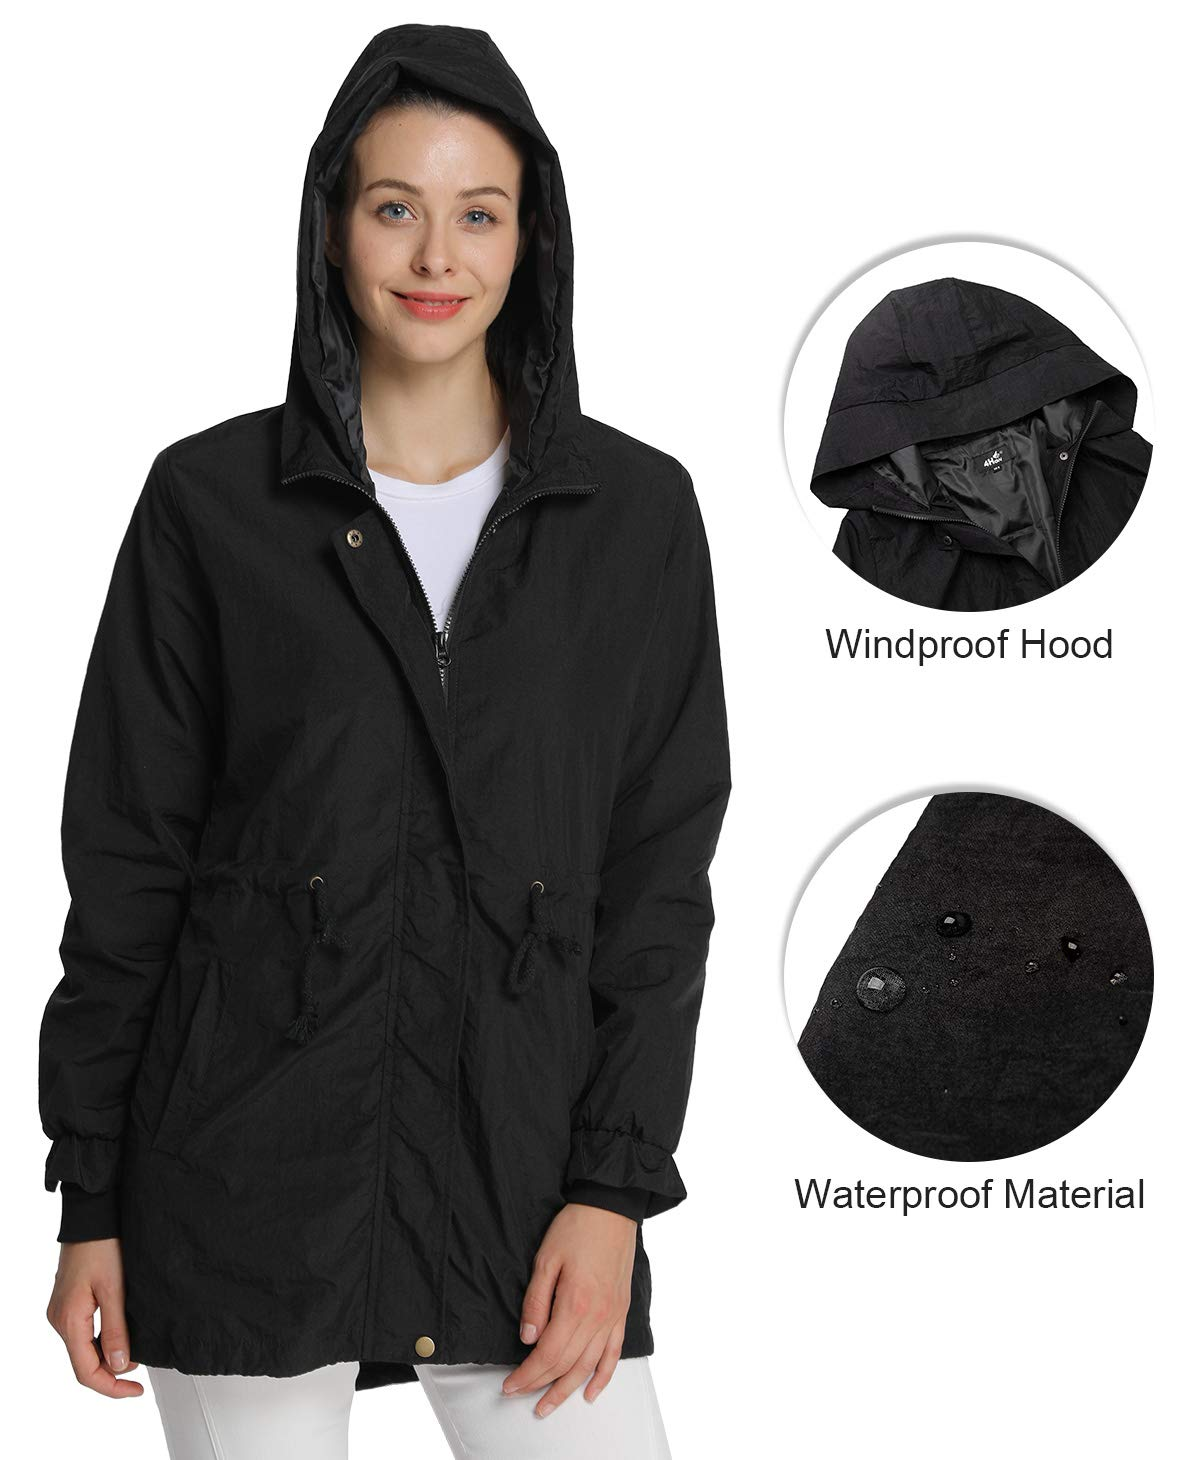 61IhKg4o%2BSL - 4How Ladies Outwear Breathable Waterproof Jacket Outdoor Lightweight Coat